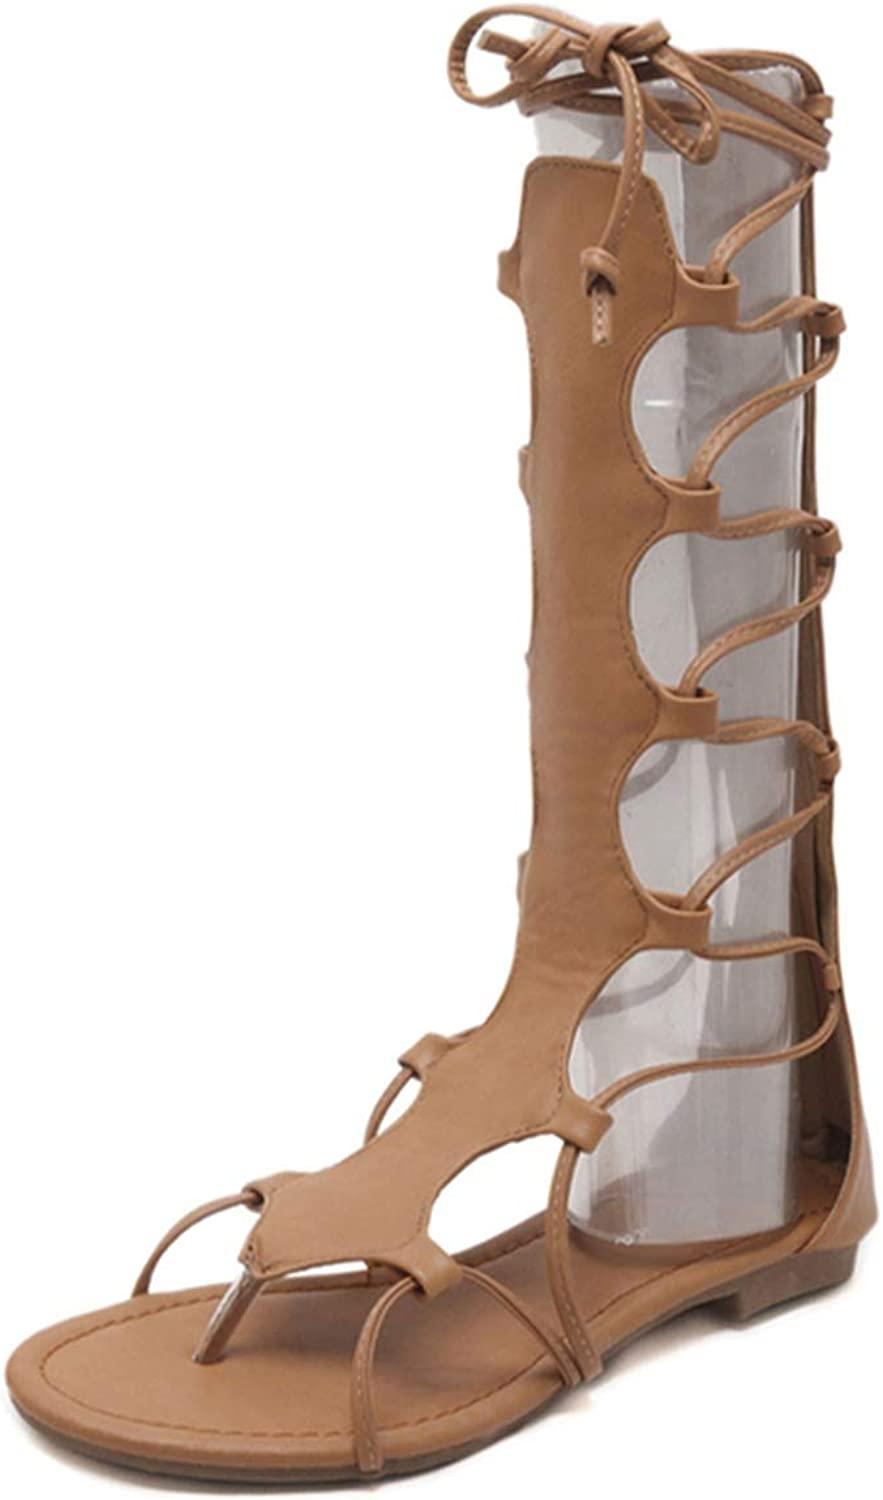 Sandals shoes Women Cross-Strap Flat with Heels Gladiator Open Toe Sandals,Brown,5